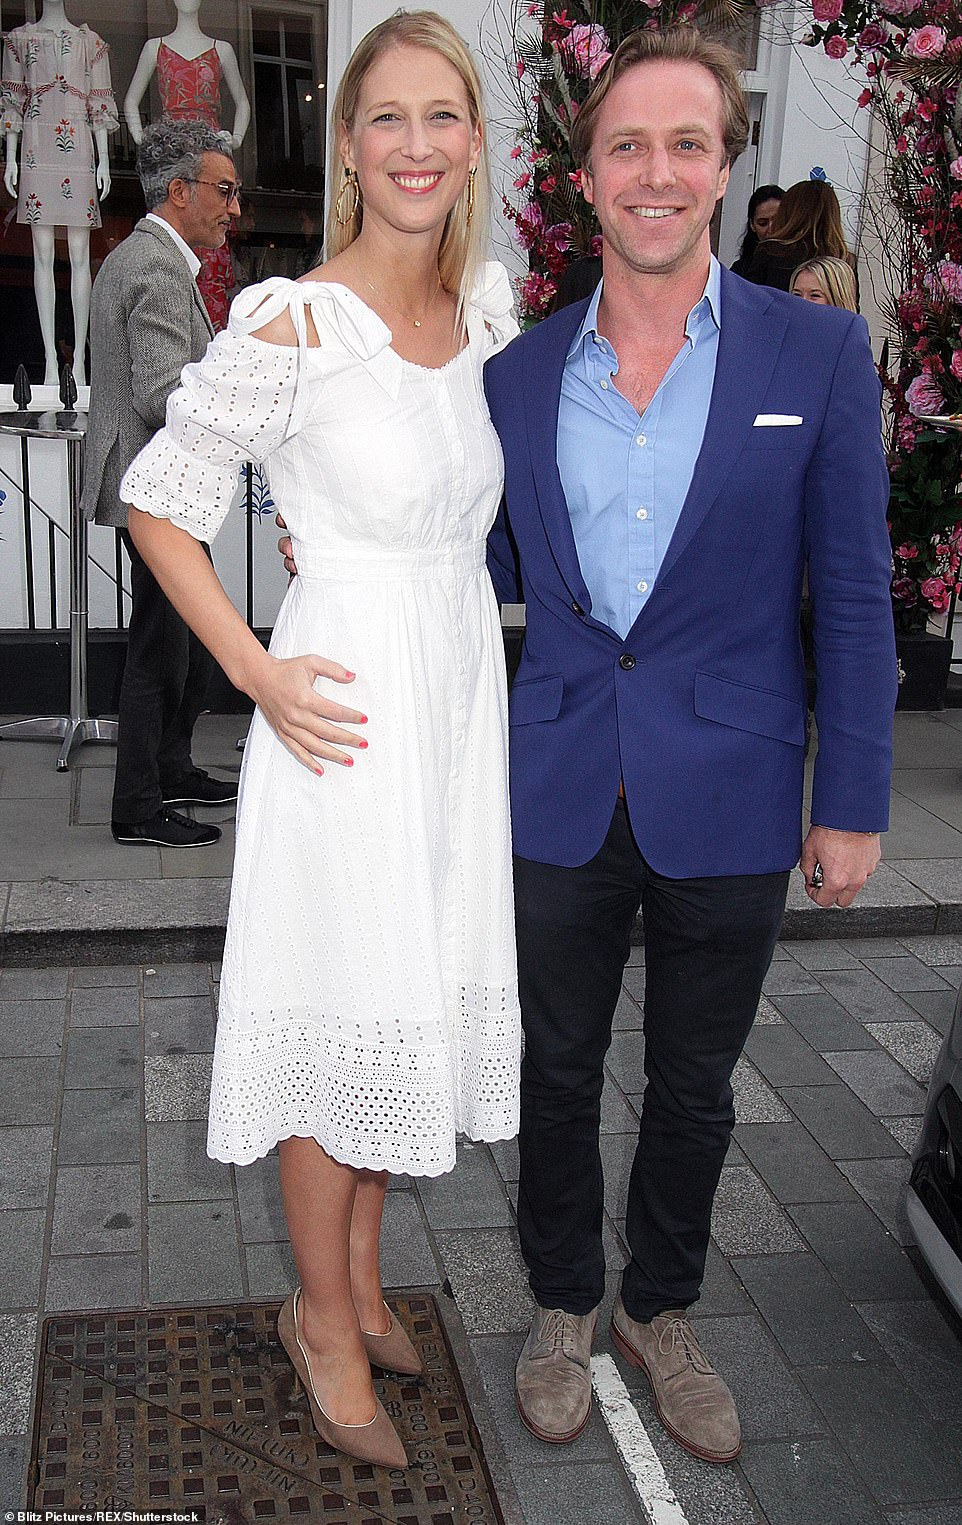 The happy couple: Bride-to-be Lady Gabriella Windsor, 38, with fiance Tom Kingston in London in May last year. The couple will marry at St George's Chapel, Windsor Castle, on Saturday